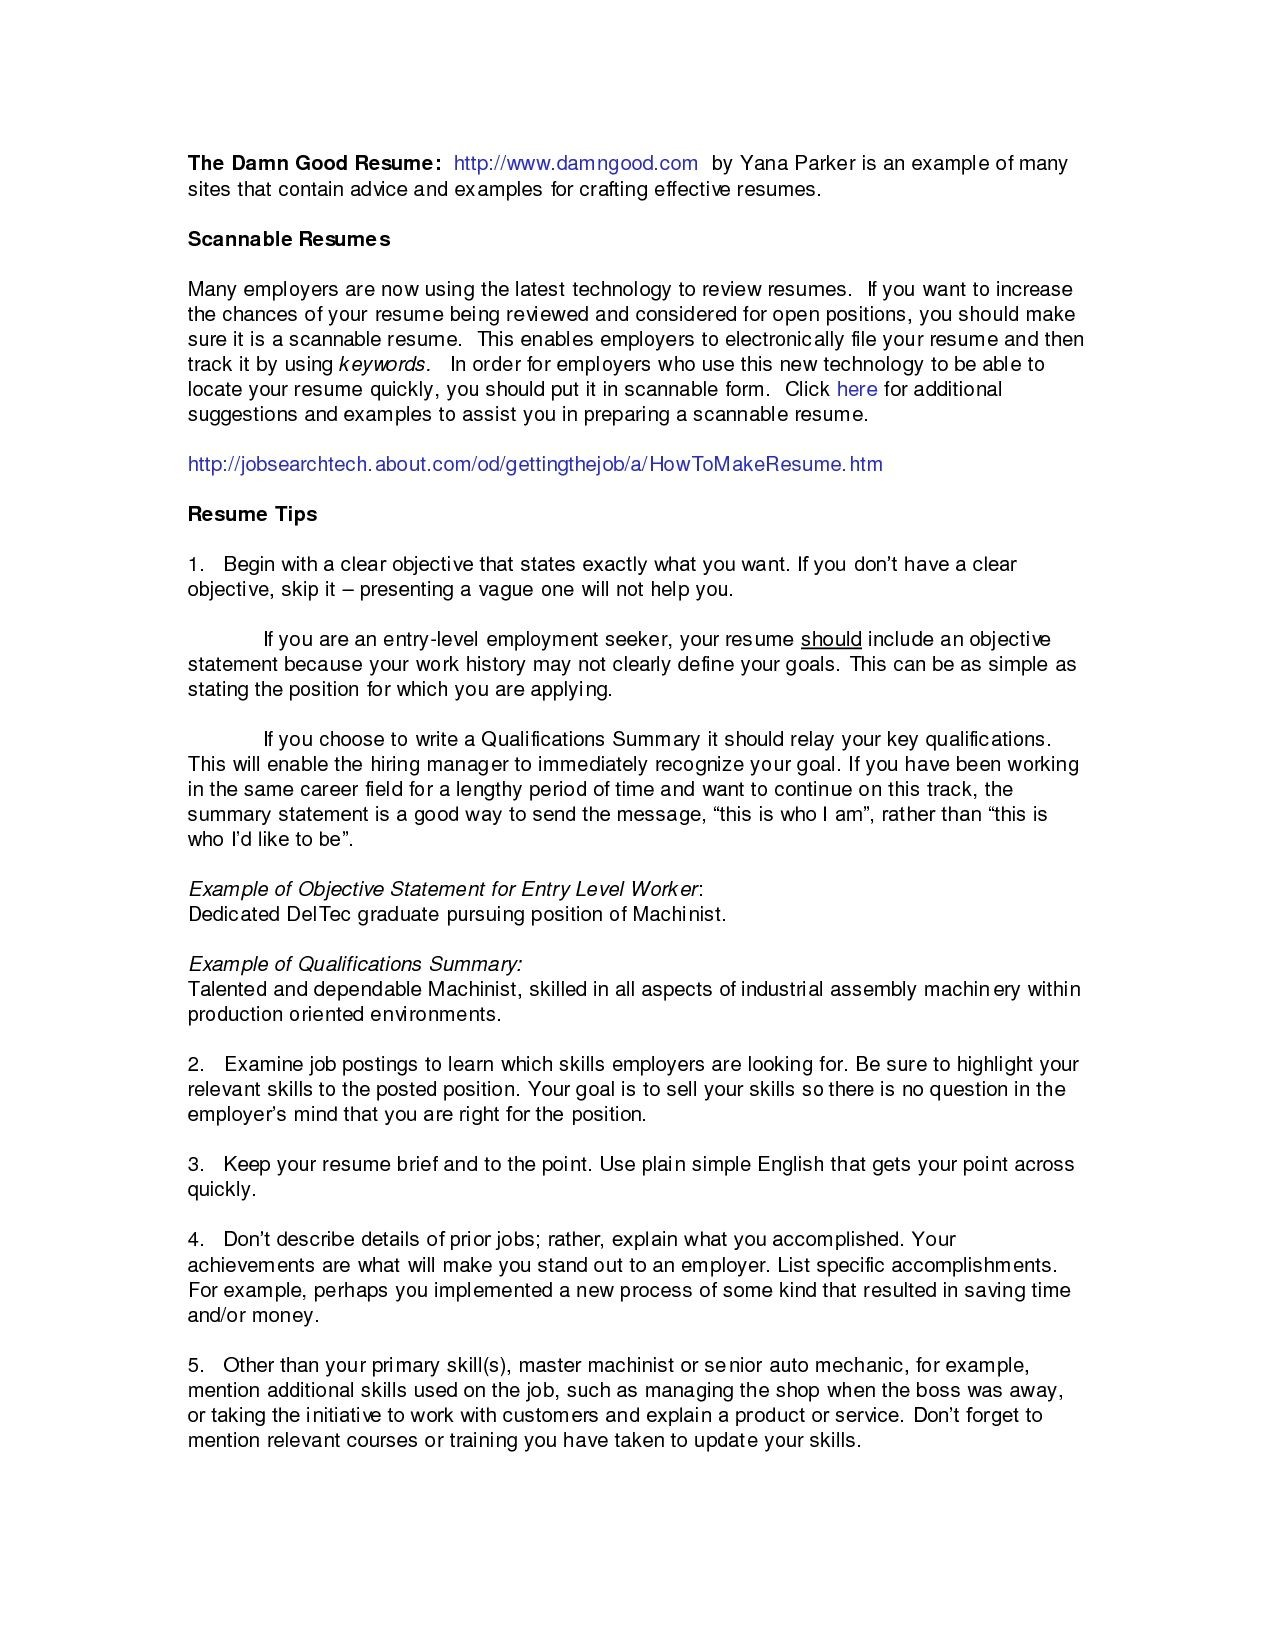 Resume Titles Examples that Stand Out - 17 Resume Titles Examples that Stand Out